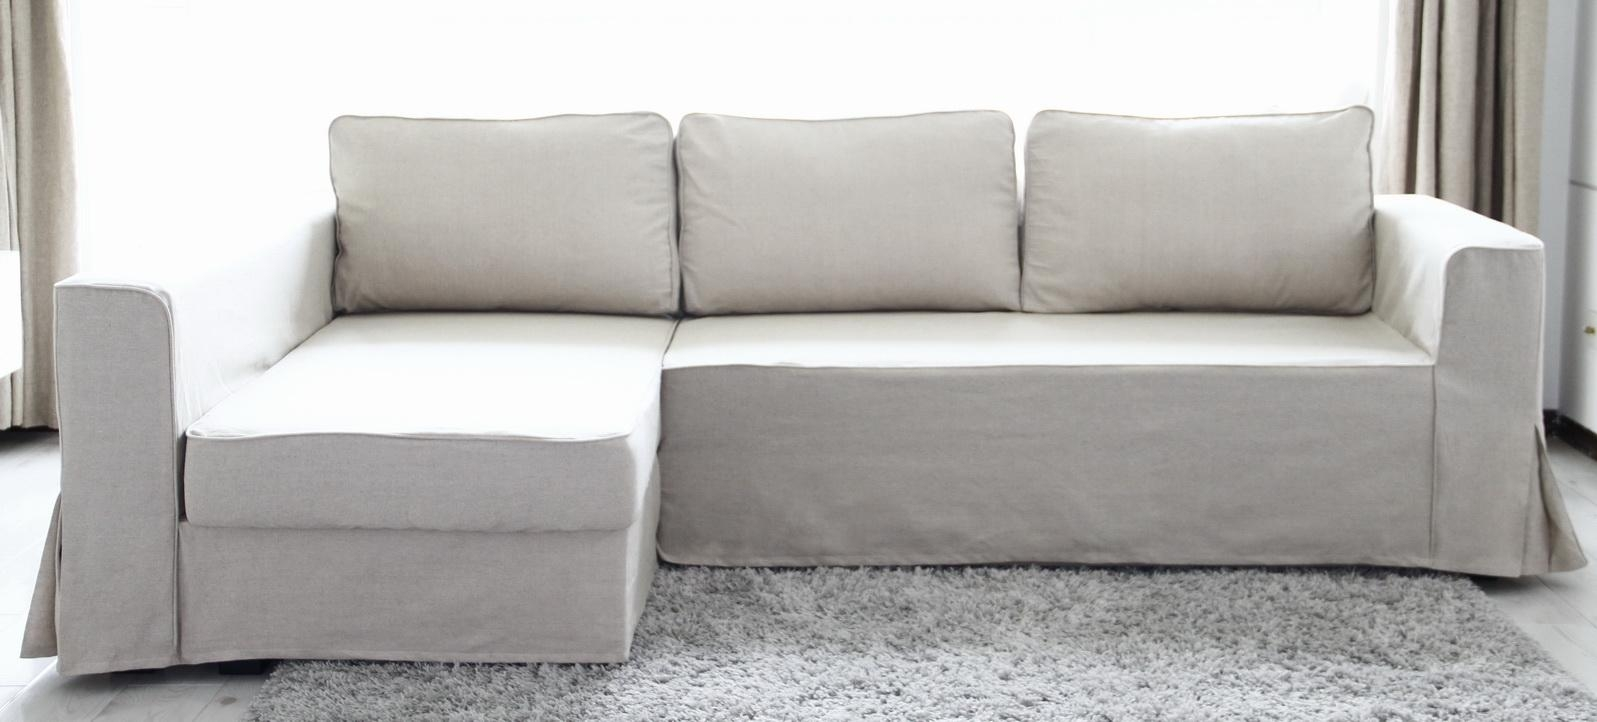 Cover Sofa Bed With Chaise Longue | Centerfieldbar Within Sofas With Chaise Longue (Image 4 of 20)